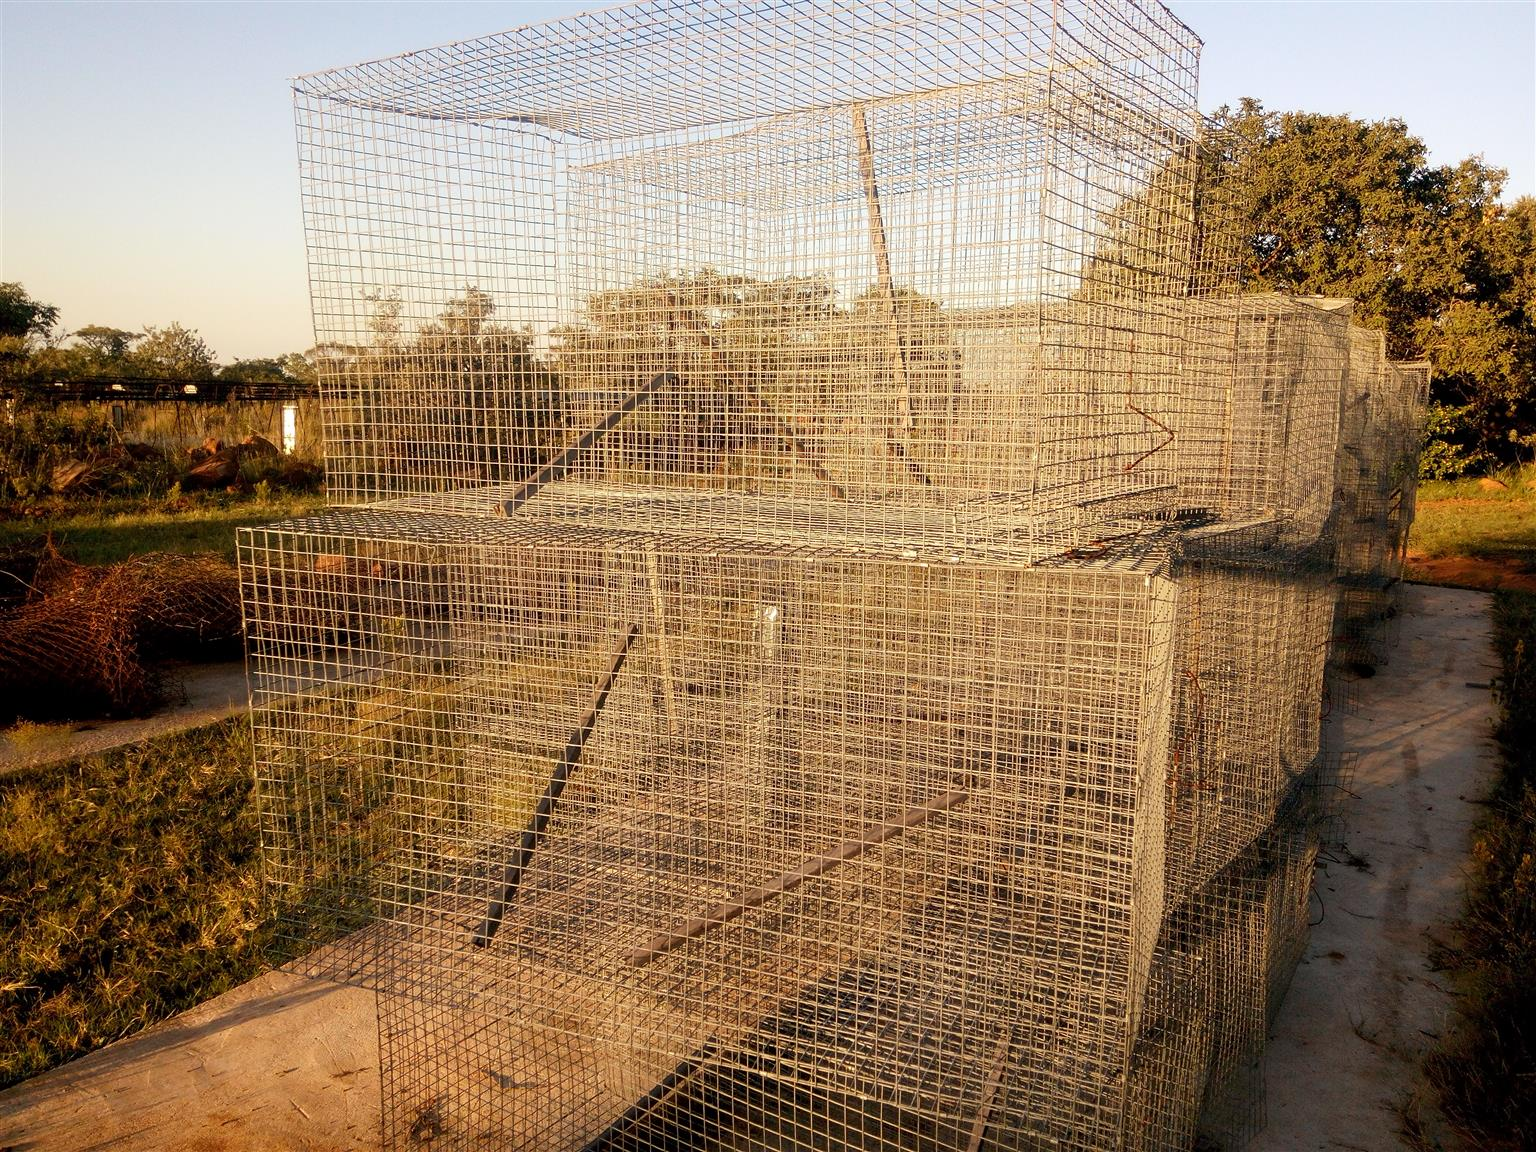 900x600x600 hanging cages